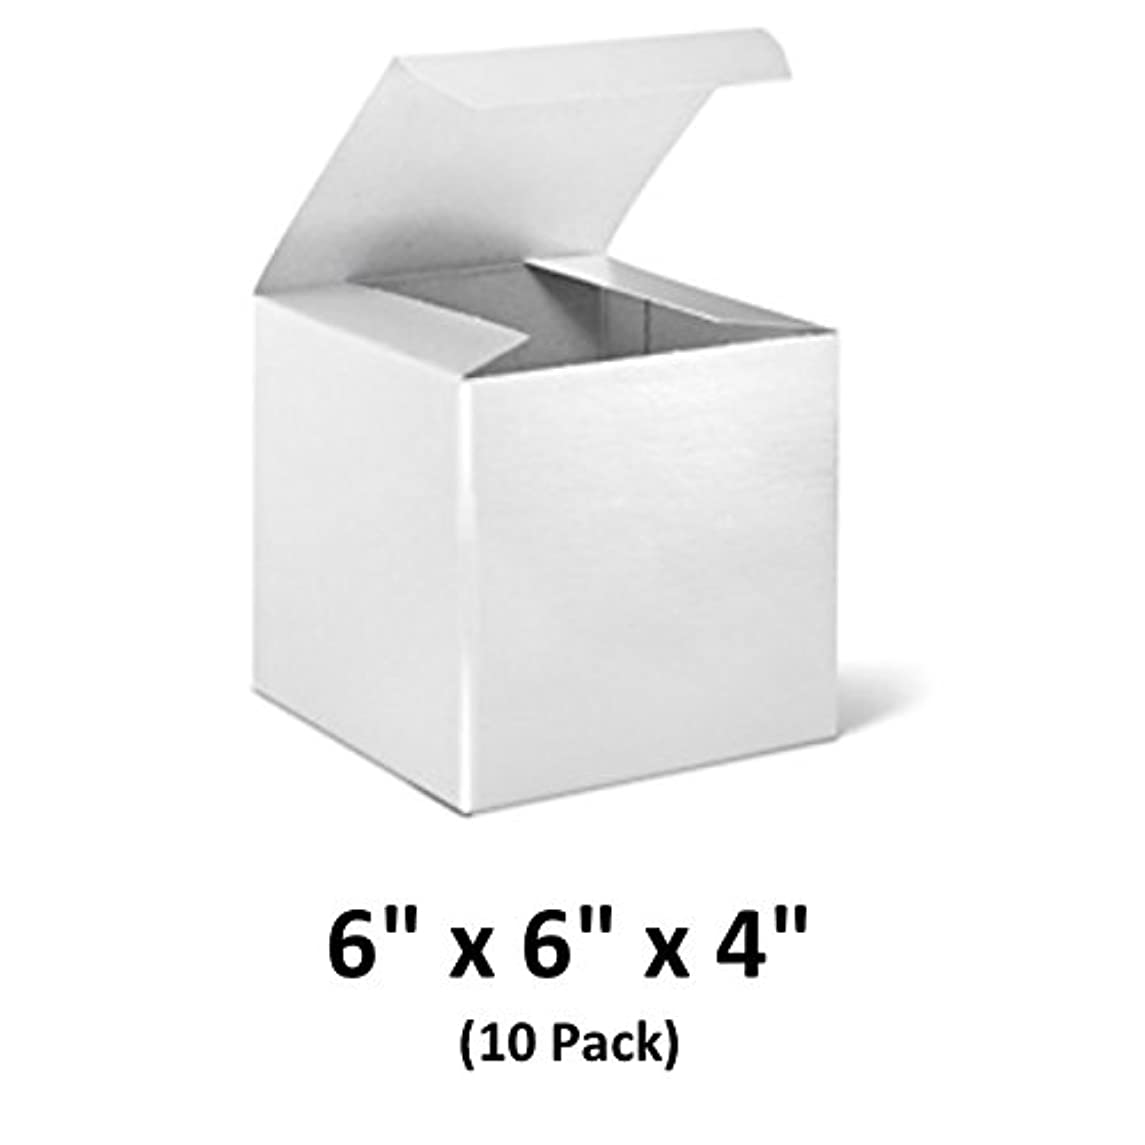 White Cardboard Tuck Top Gift Boxes with Lids, 6x6x4 (10 Pack) for Gifts, Crafting & Cupcakes | MagicWater Supply